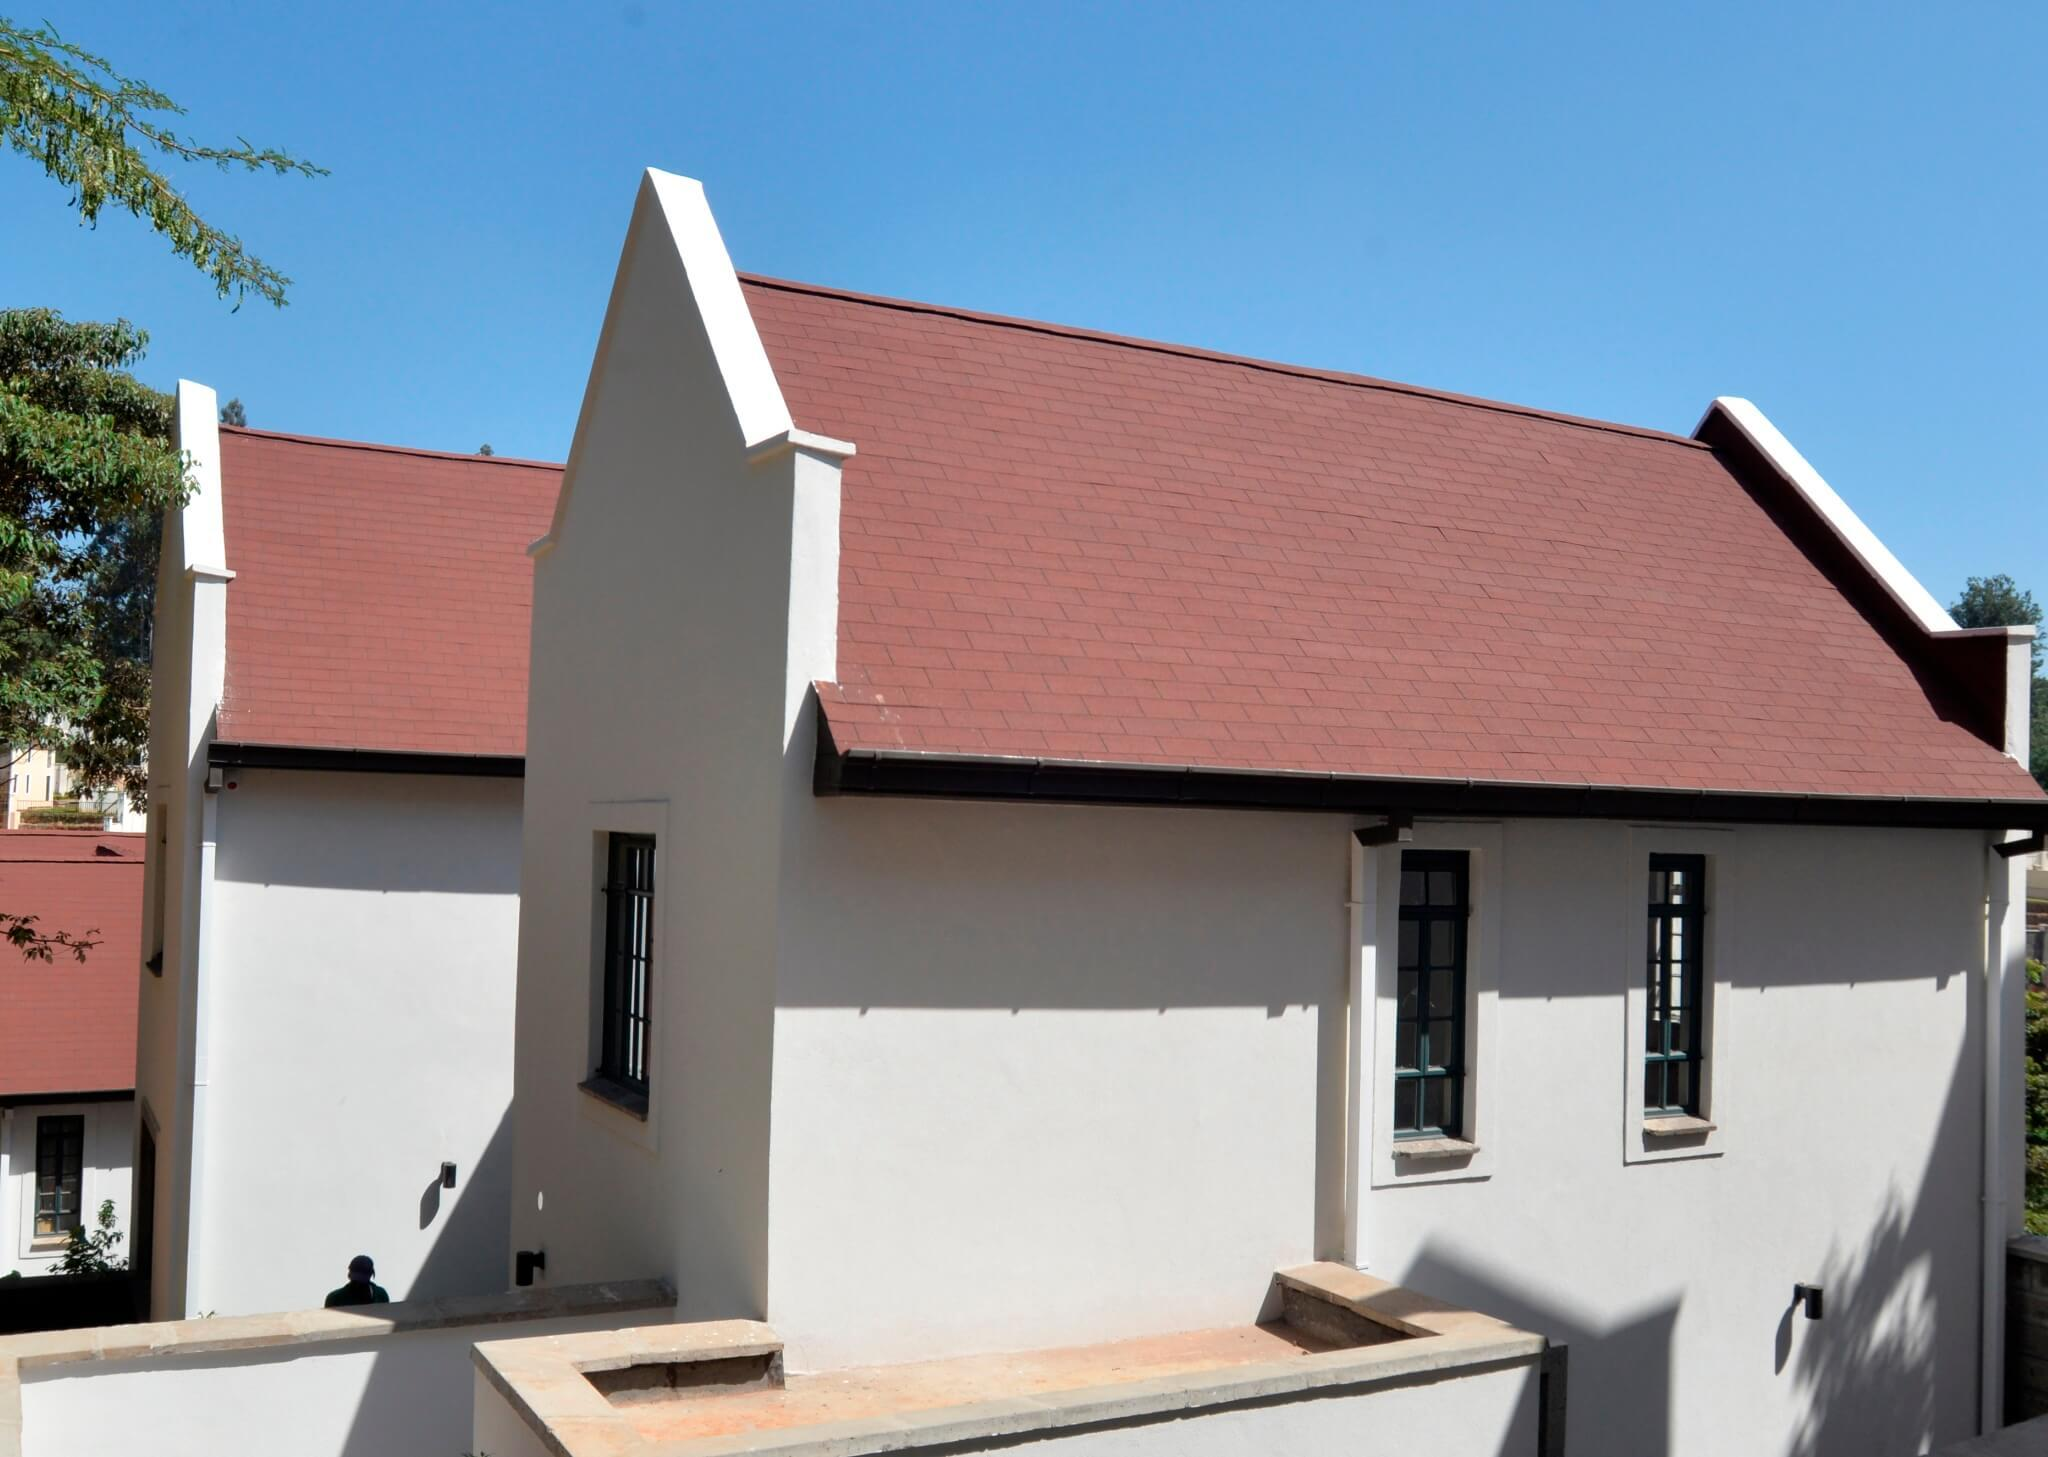 Superglass Roofing Shingles: Runda Roofing Project